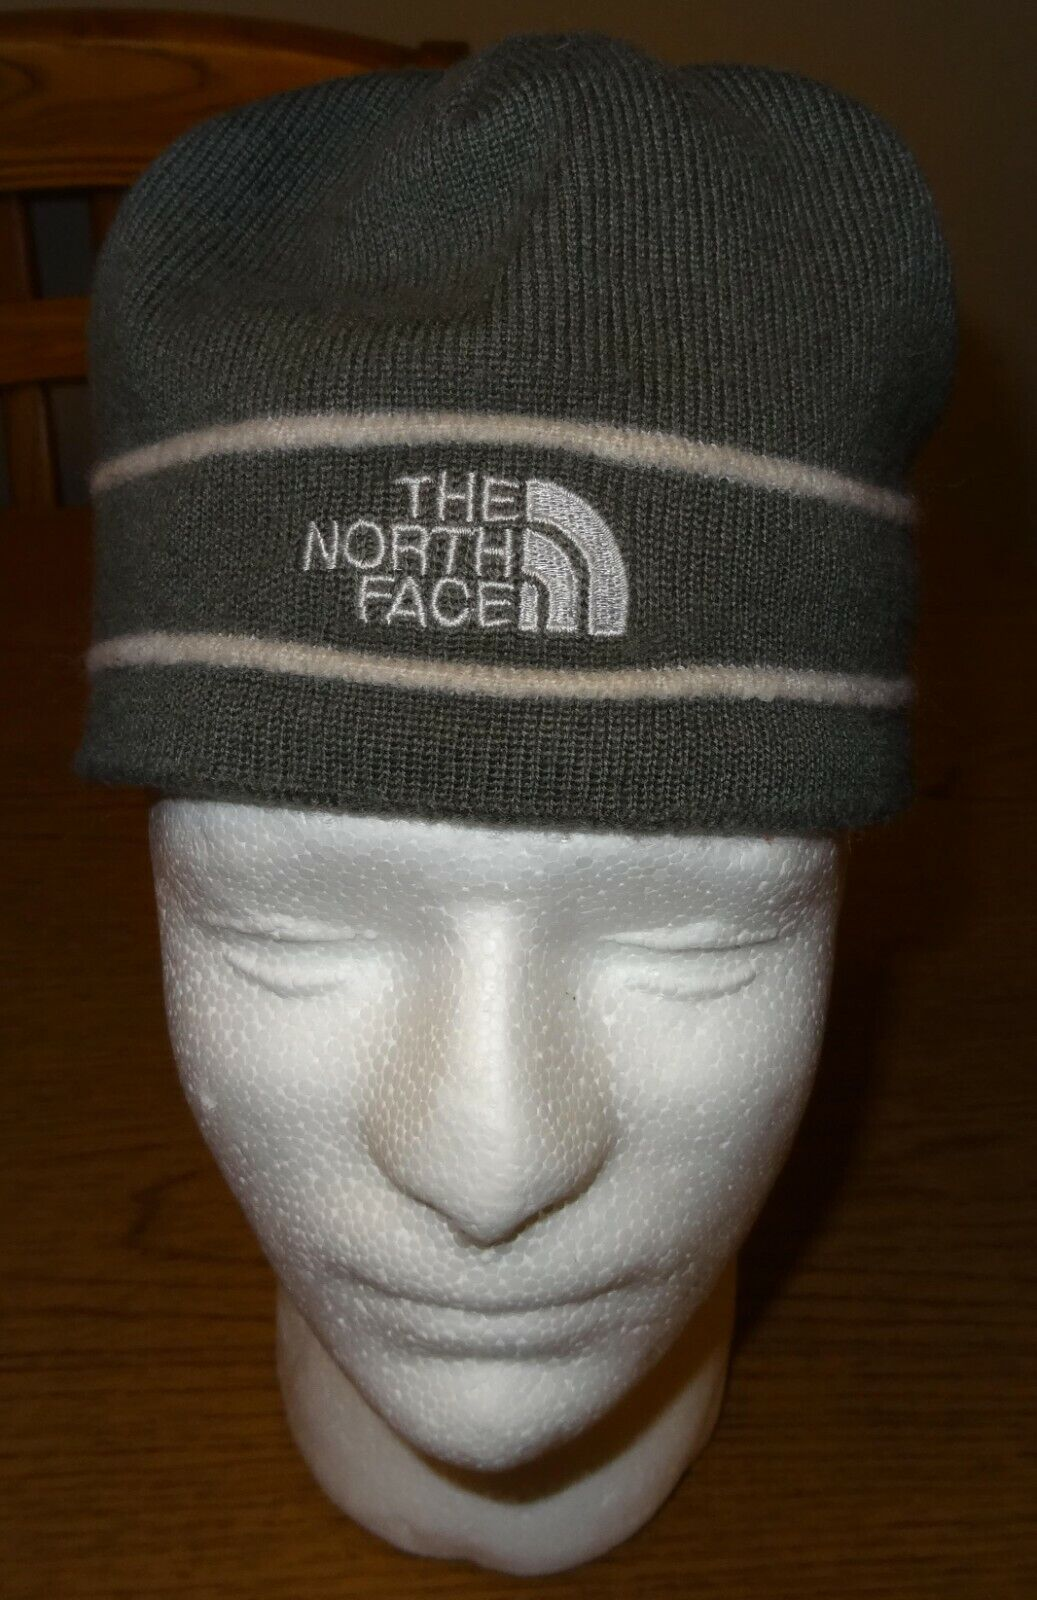 The North Face Beanie Knit - Greenish-Grey - Adult Unisex - One Size Fits All - $3.50